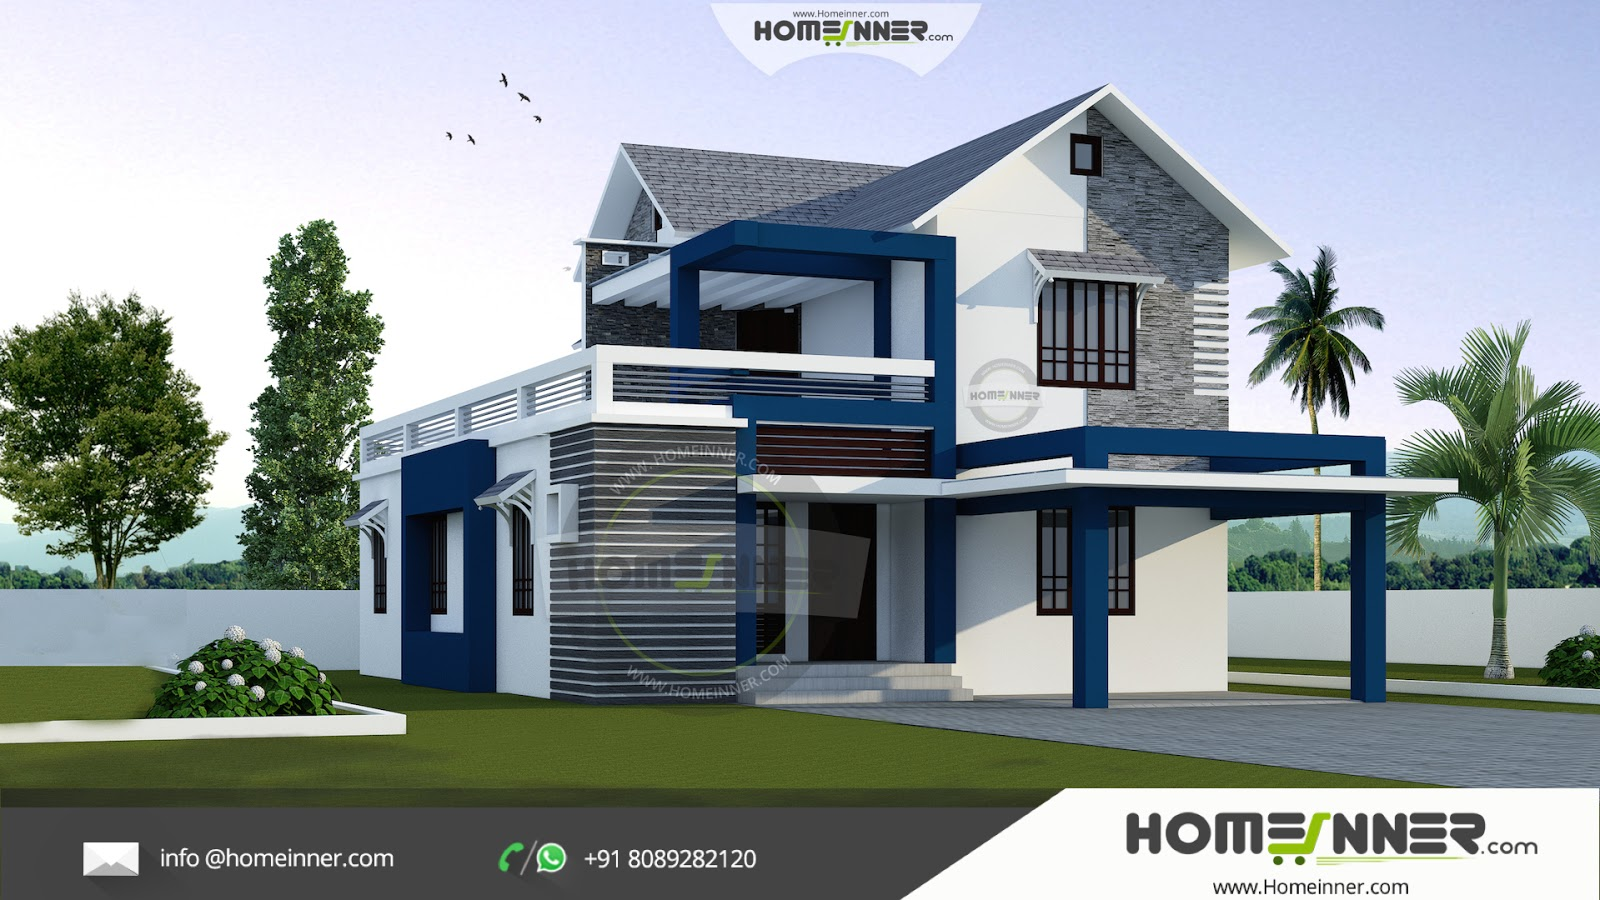 Modern stylish 3 bhk small budget 1500 sqft indian home for Free small house plans indian style